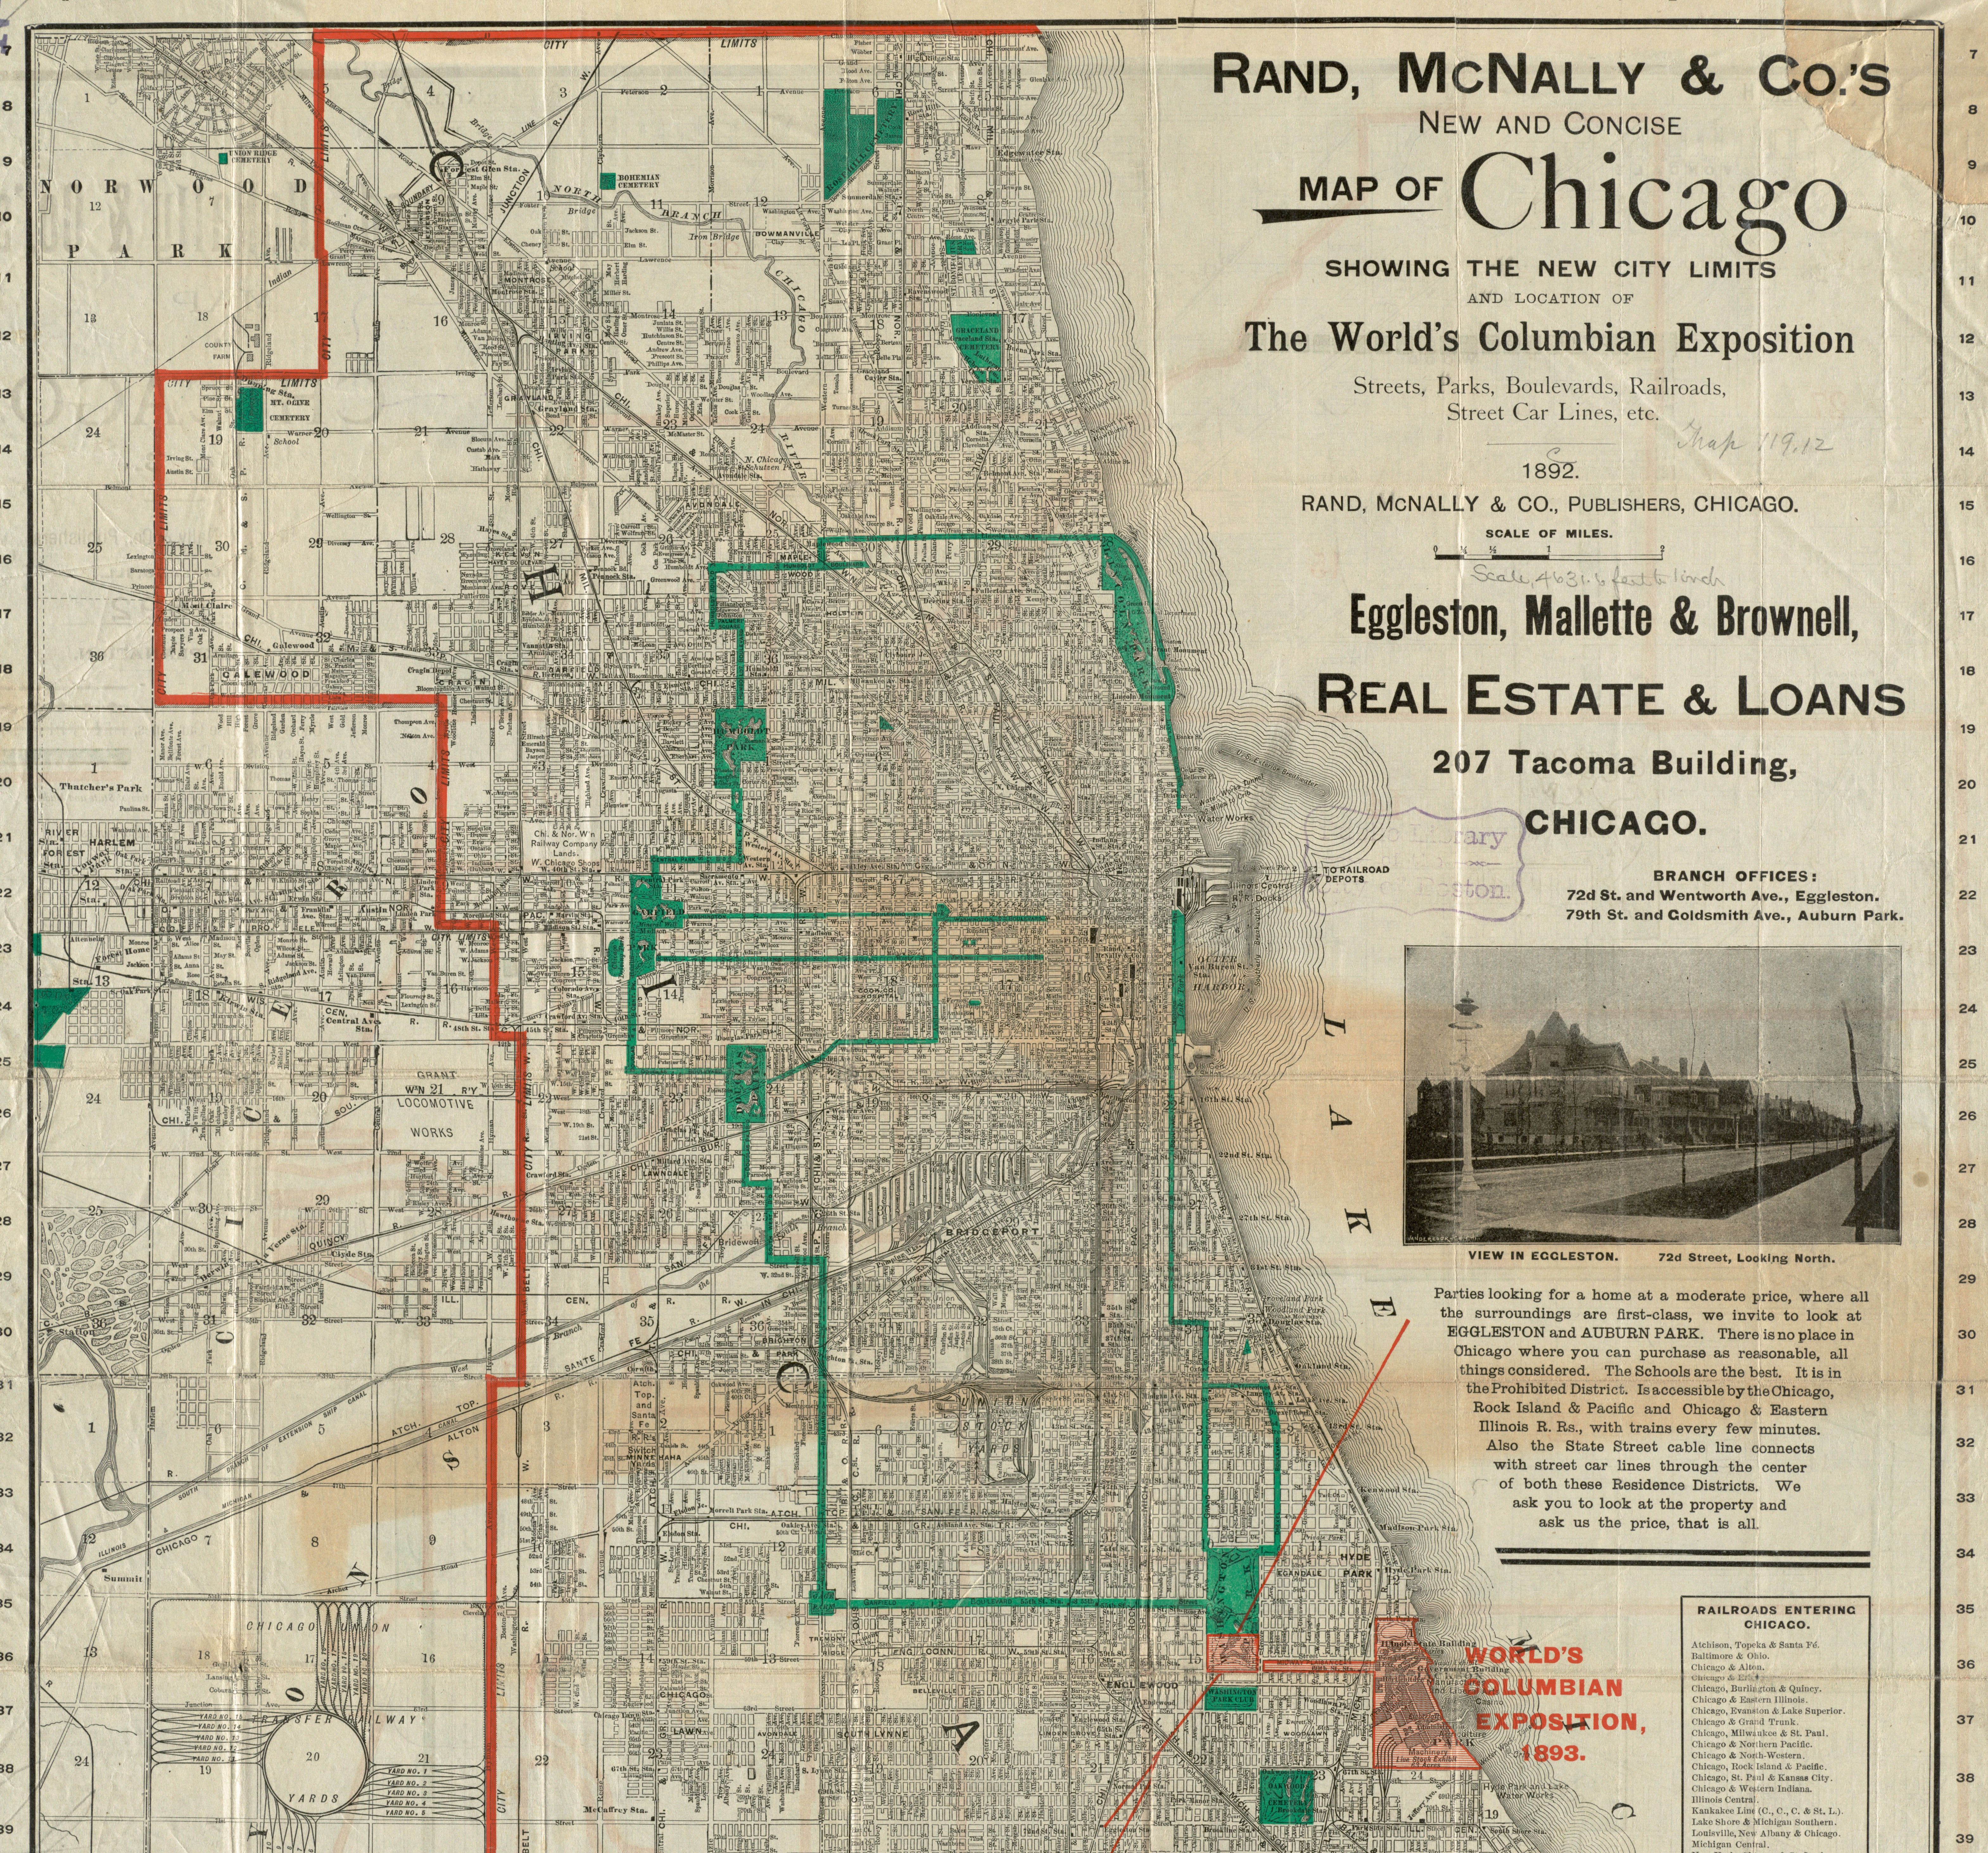 An 1892 Chicago map from Rand, McNally & Co. showing the site of the World's Colombian Exposition (also known as the World's Fair)